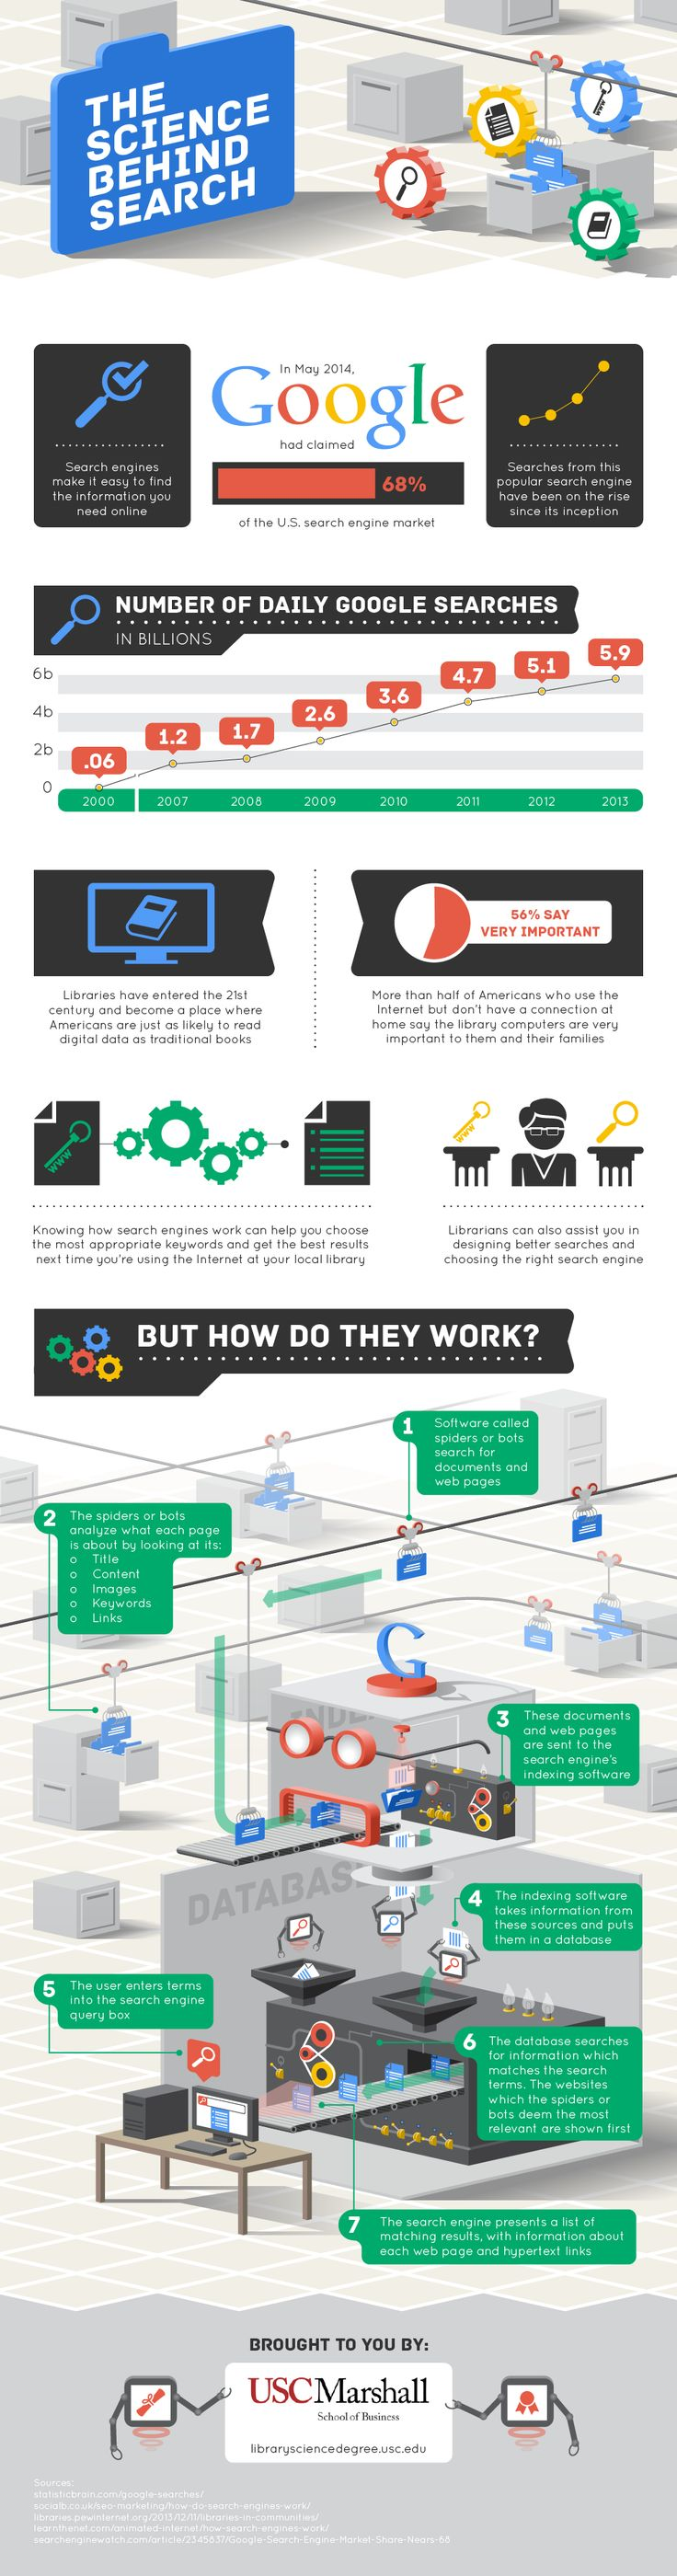 The Science Behind Search #infographic #Search #Internet